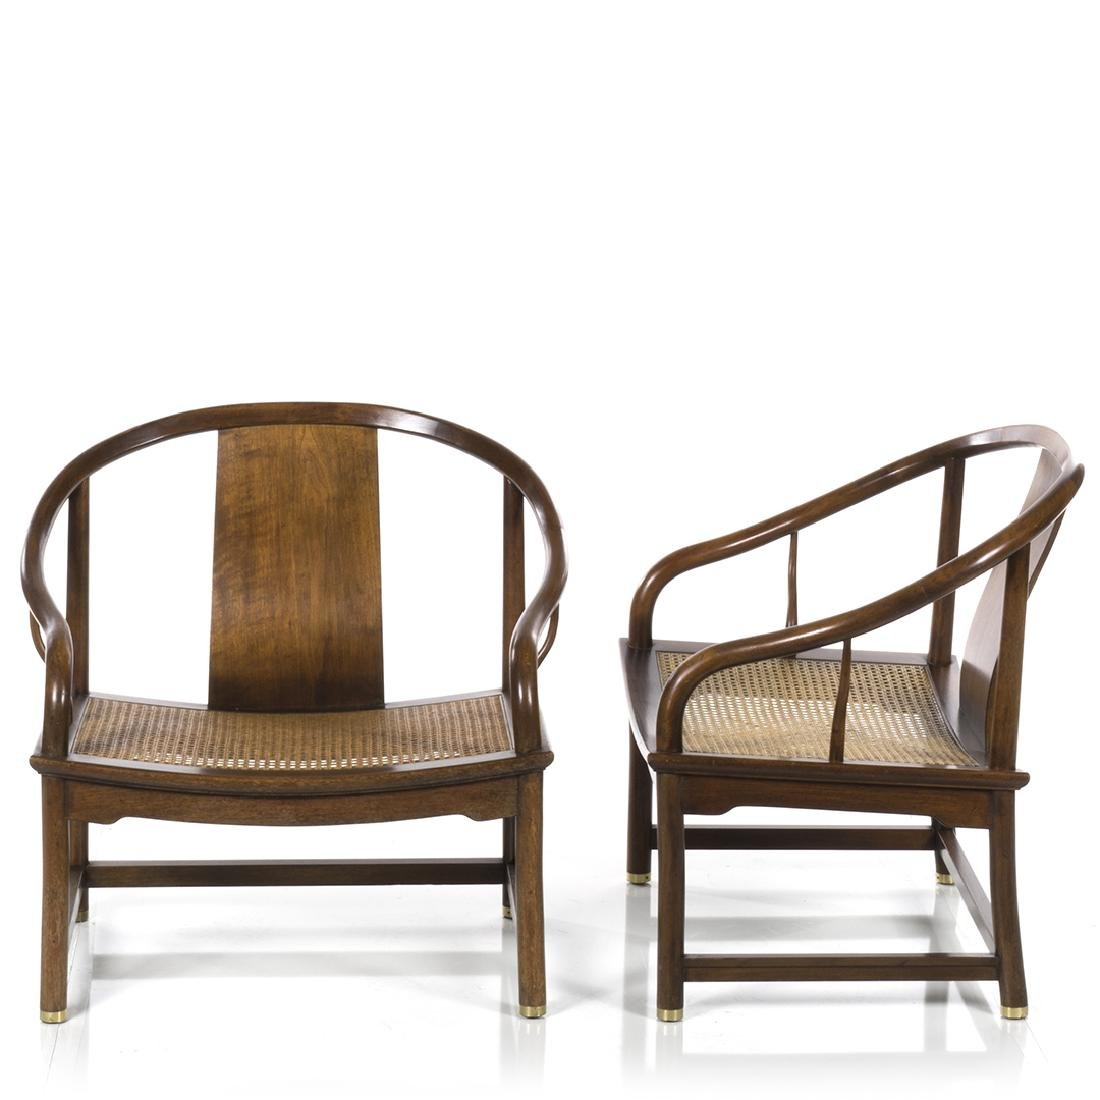 Michael Taylor Far East Lounge Chairs (2) - 3